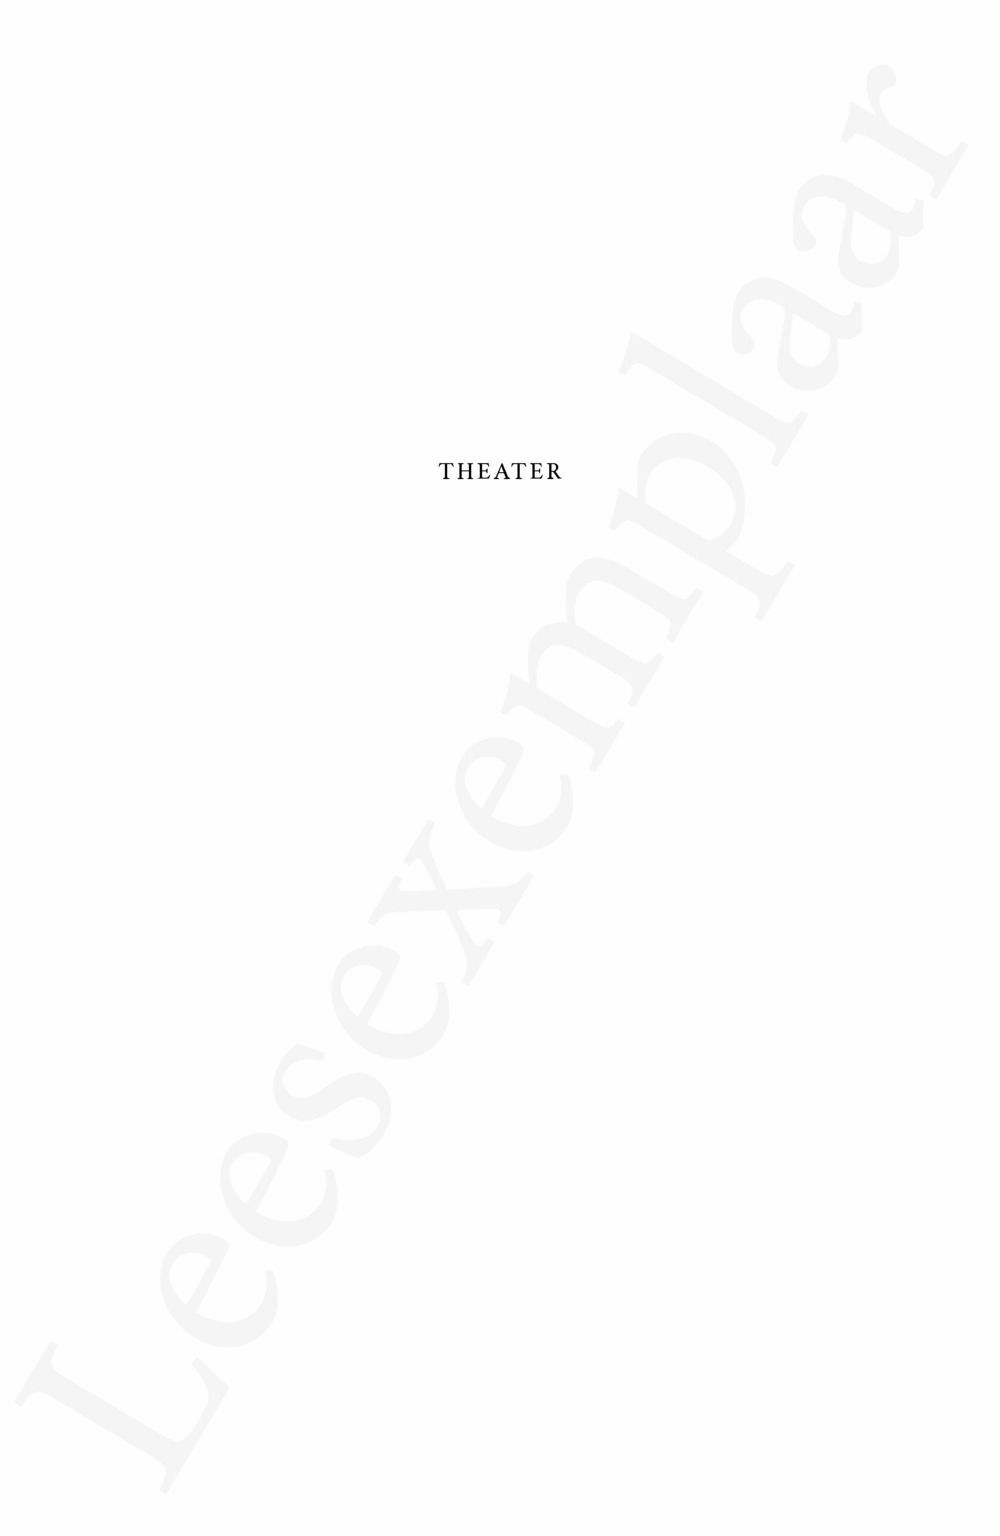 Preview: Theater